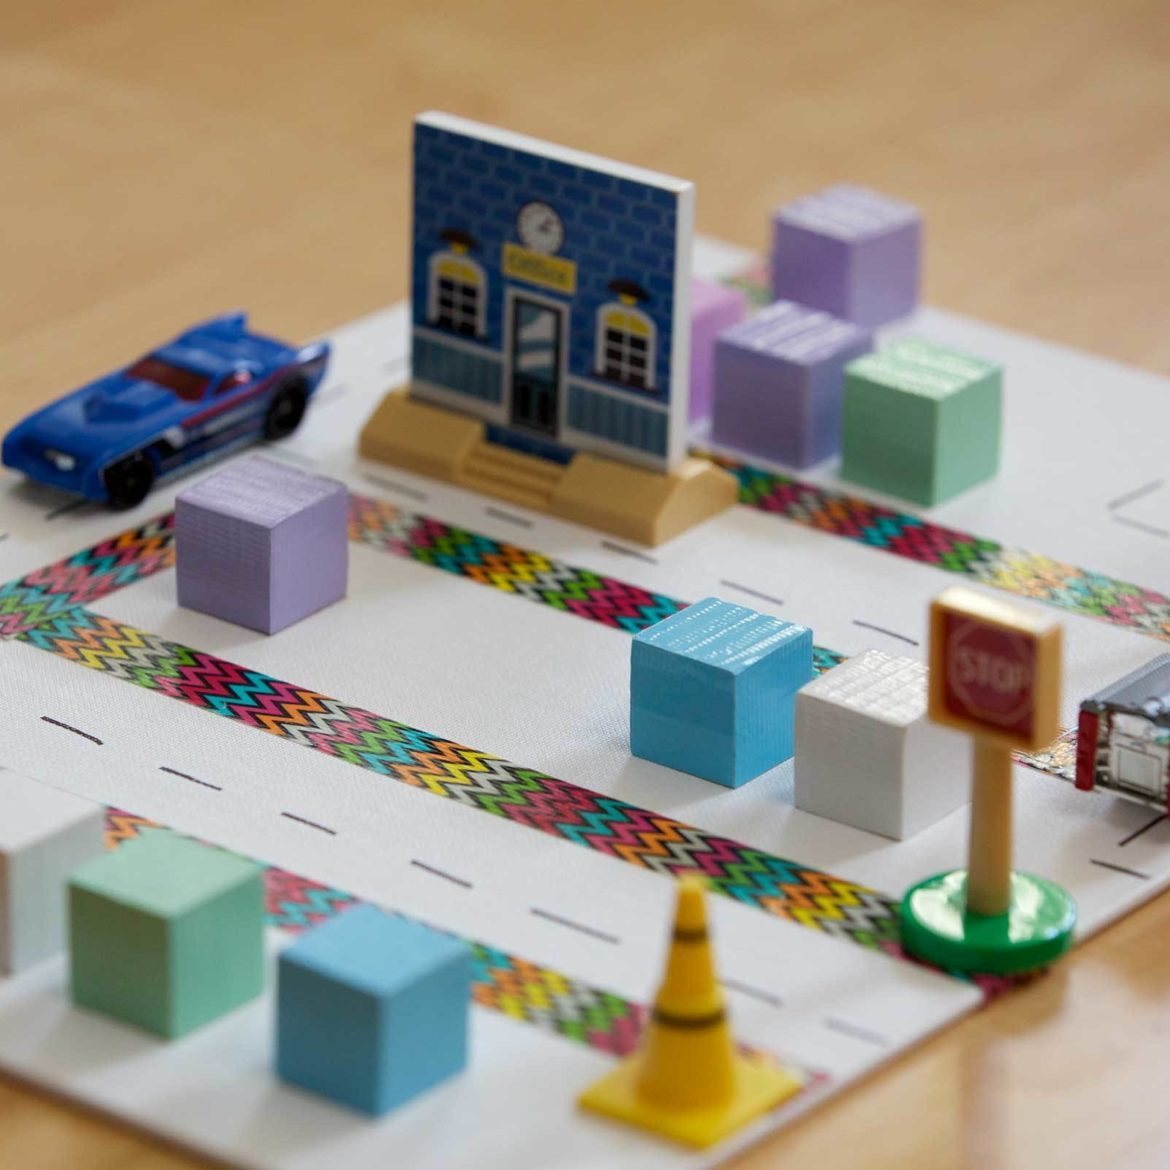 Make a kids' neighborhood with Duck Tape